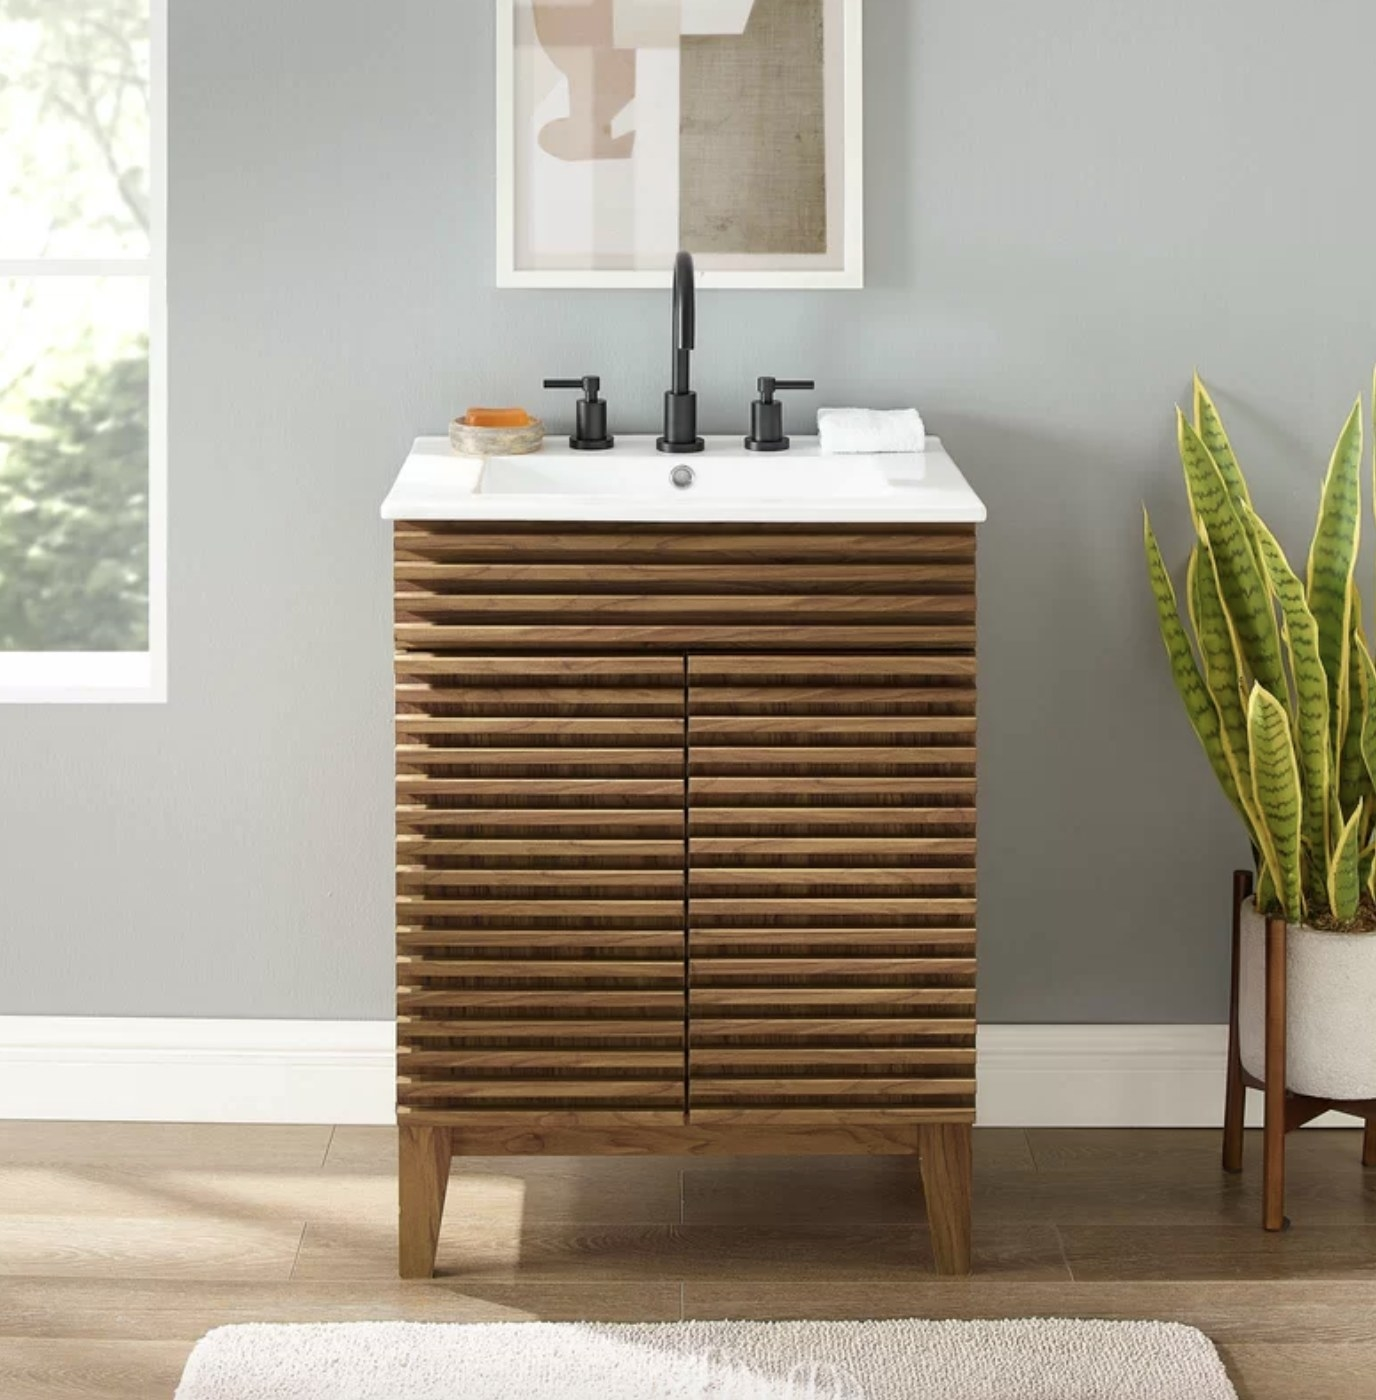 the vanity with a brown cabinet, white sink, and black faucet